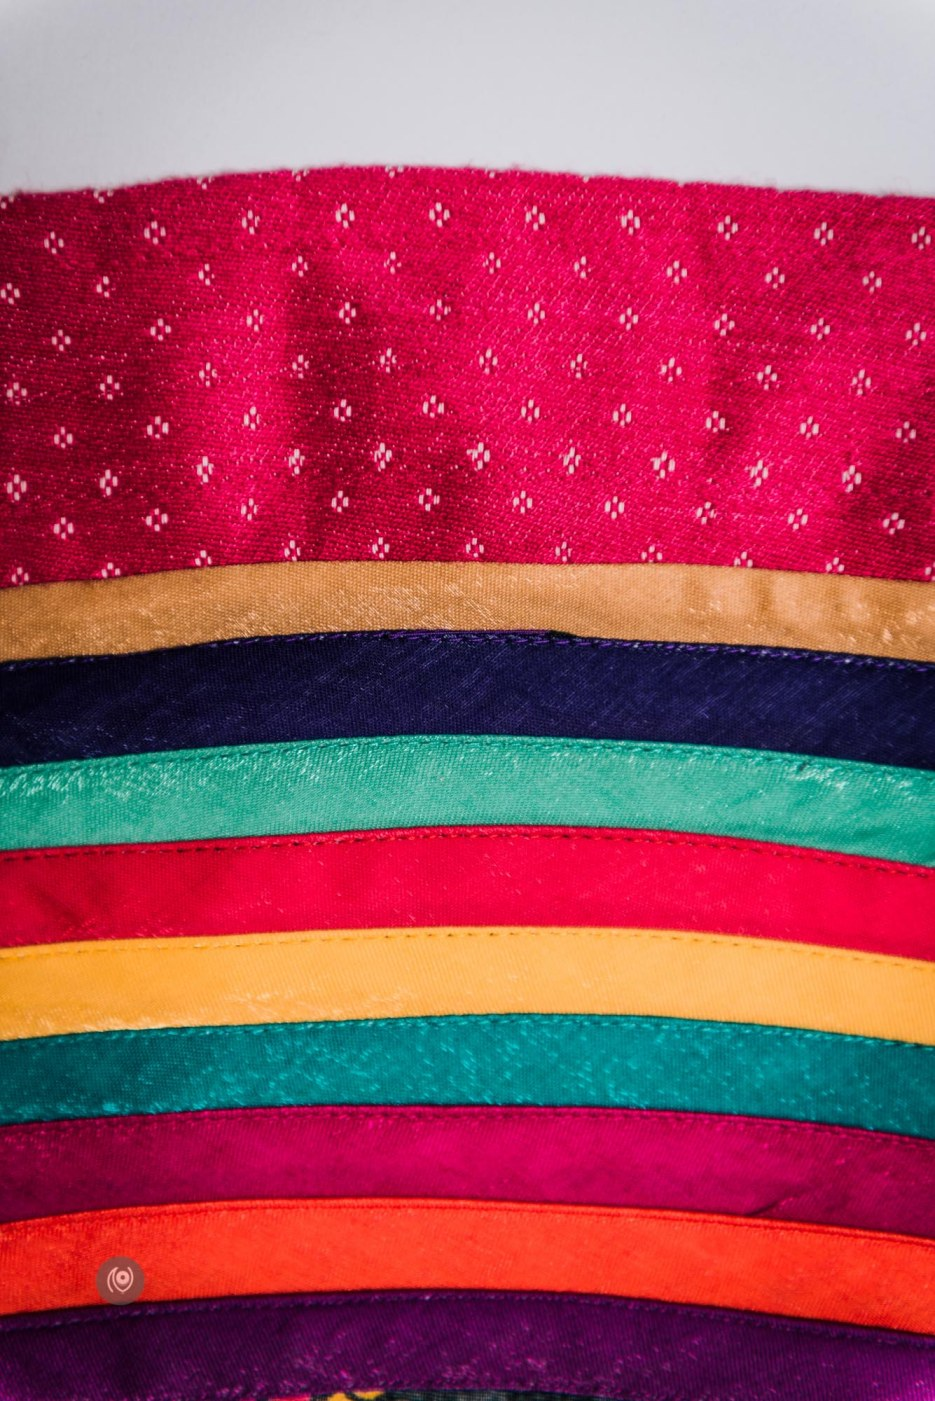 #CoverUp 64 #MadeInIndia vraj:bhoomi, Diaries of Nomad, Harshita Gautam, Ghaagra, Chanderi Silk, Tribal India, Flying Fish Accessories, Poem Bags, Naina.co, Naina Redhu, Luxury Photographer, Lifestyle Photographer, Luxury Blogger, Lifestyle Blogger, Experience Collector, Personal Style, #MadeInIndia, #CoverUp